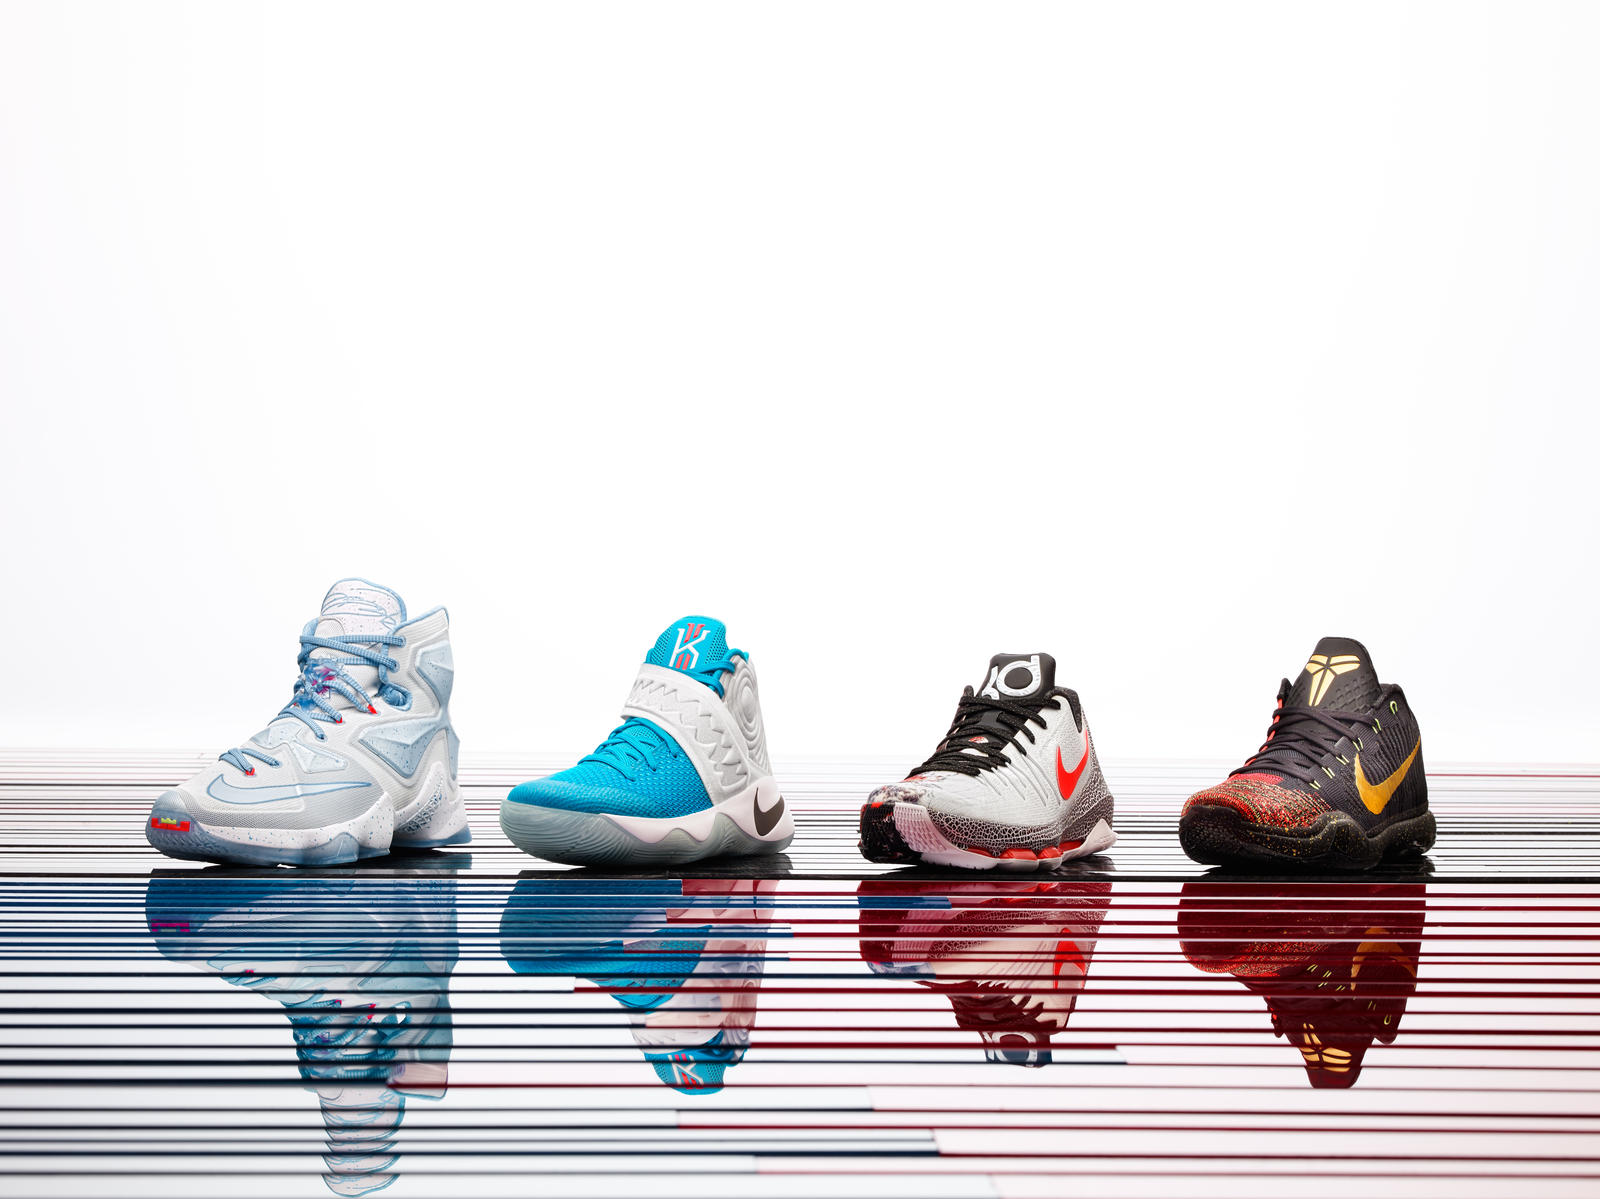 41f3cb2886c6 Fire and Ice  The 2015 Nike Basketball Christmas Collection - Nike News